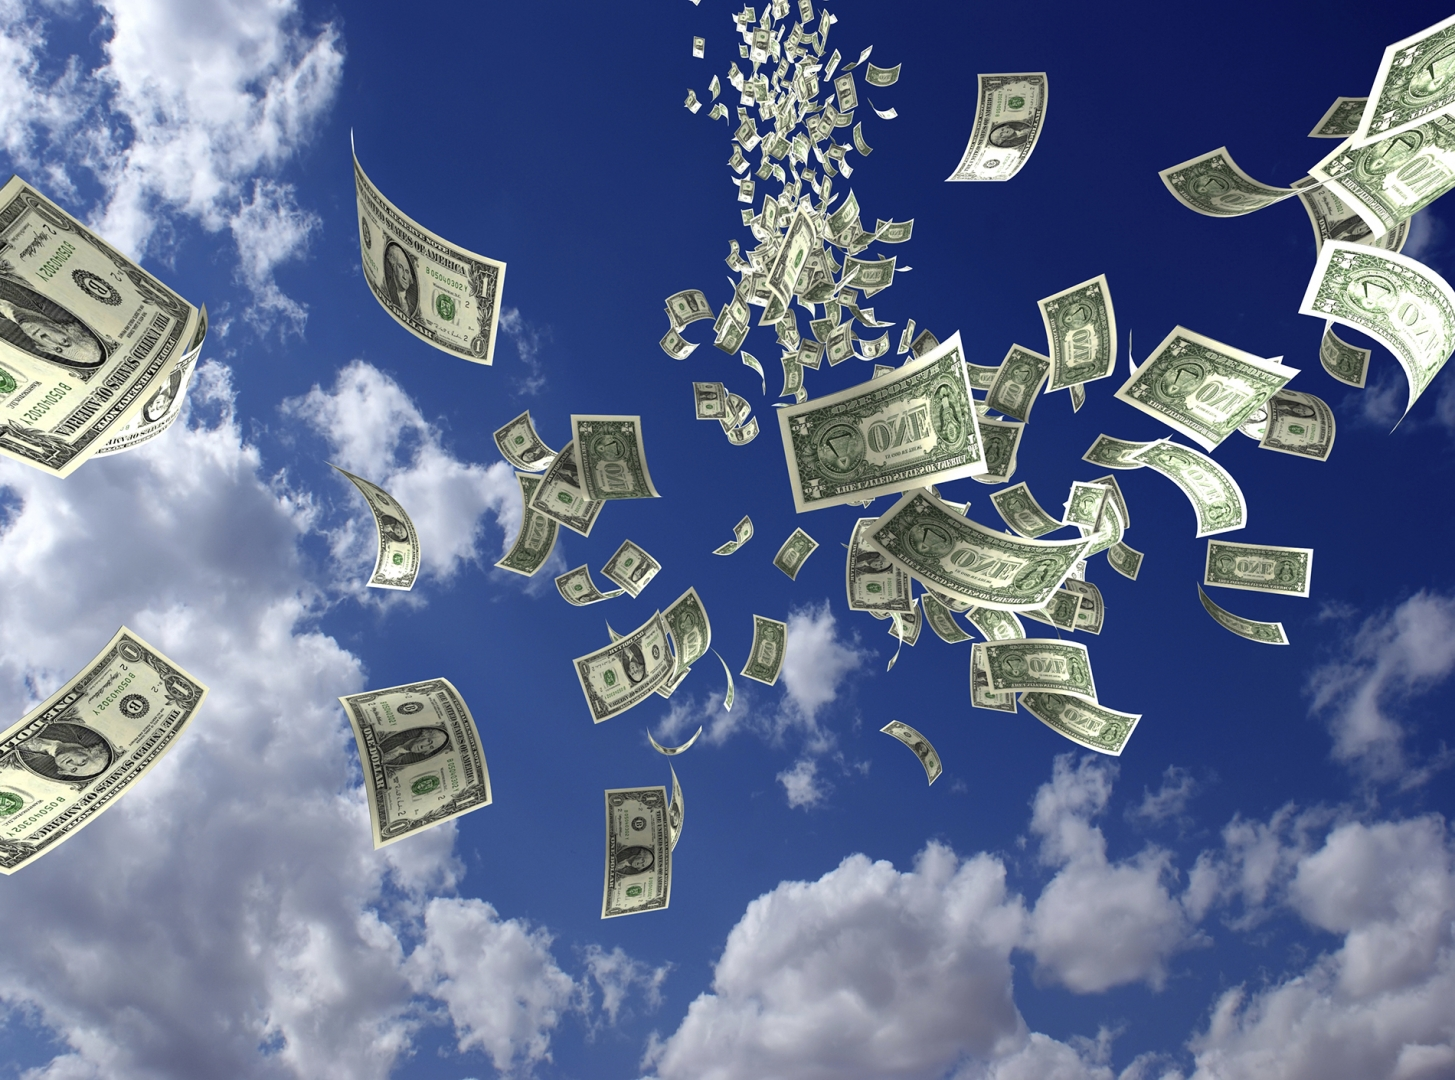 money tossed in the air with clouds